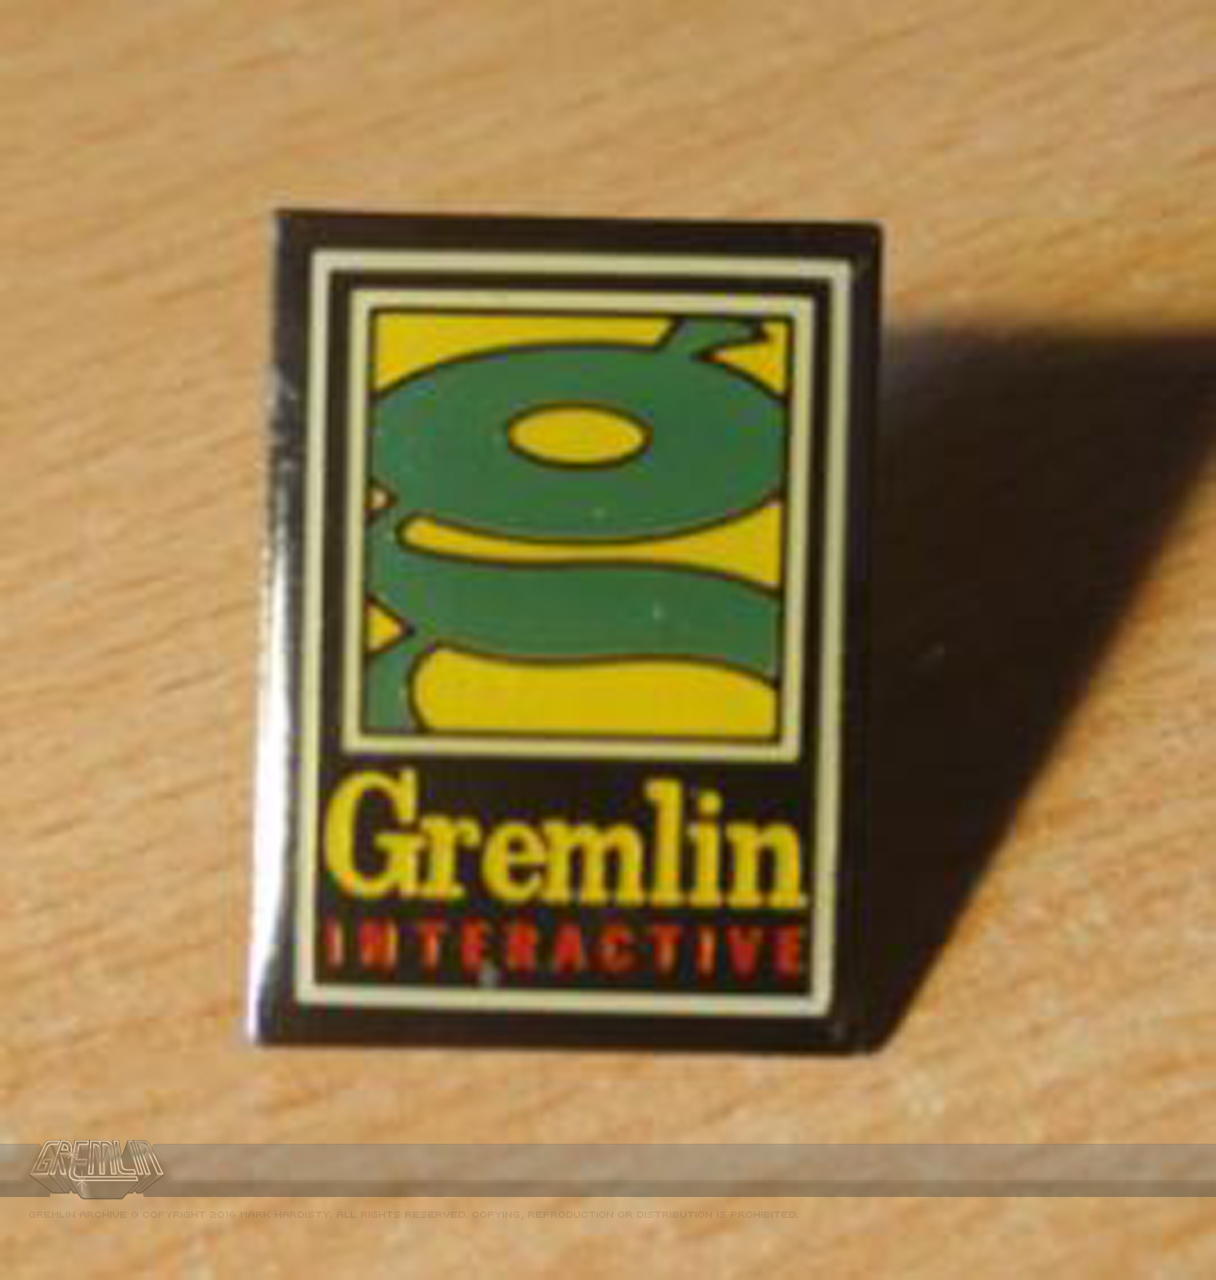 Gremlin lapel pin-badge